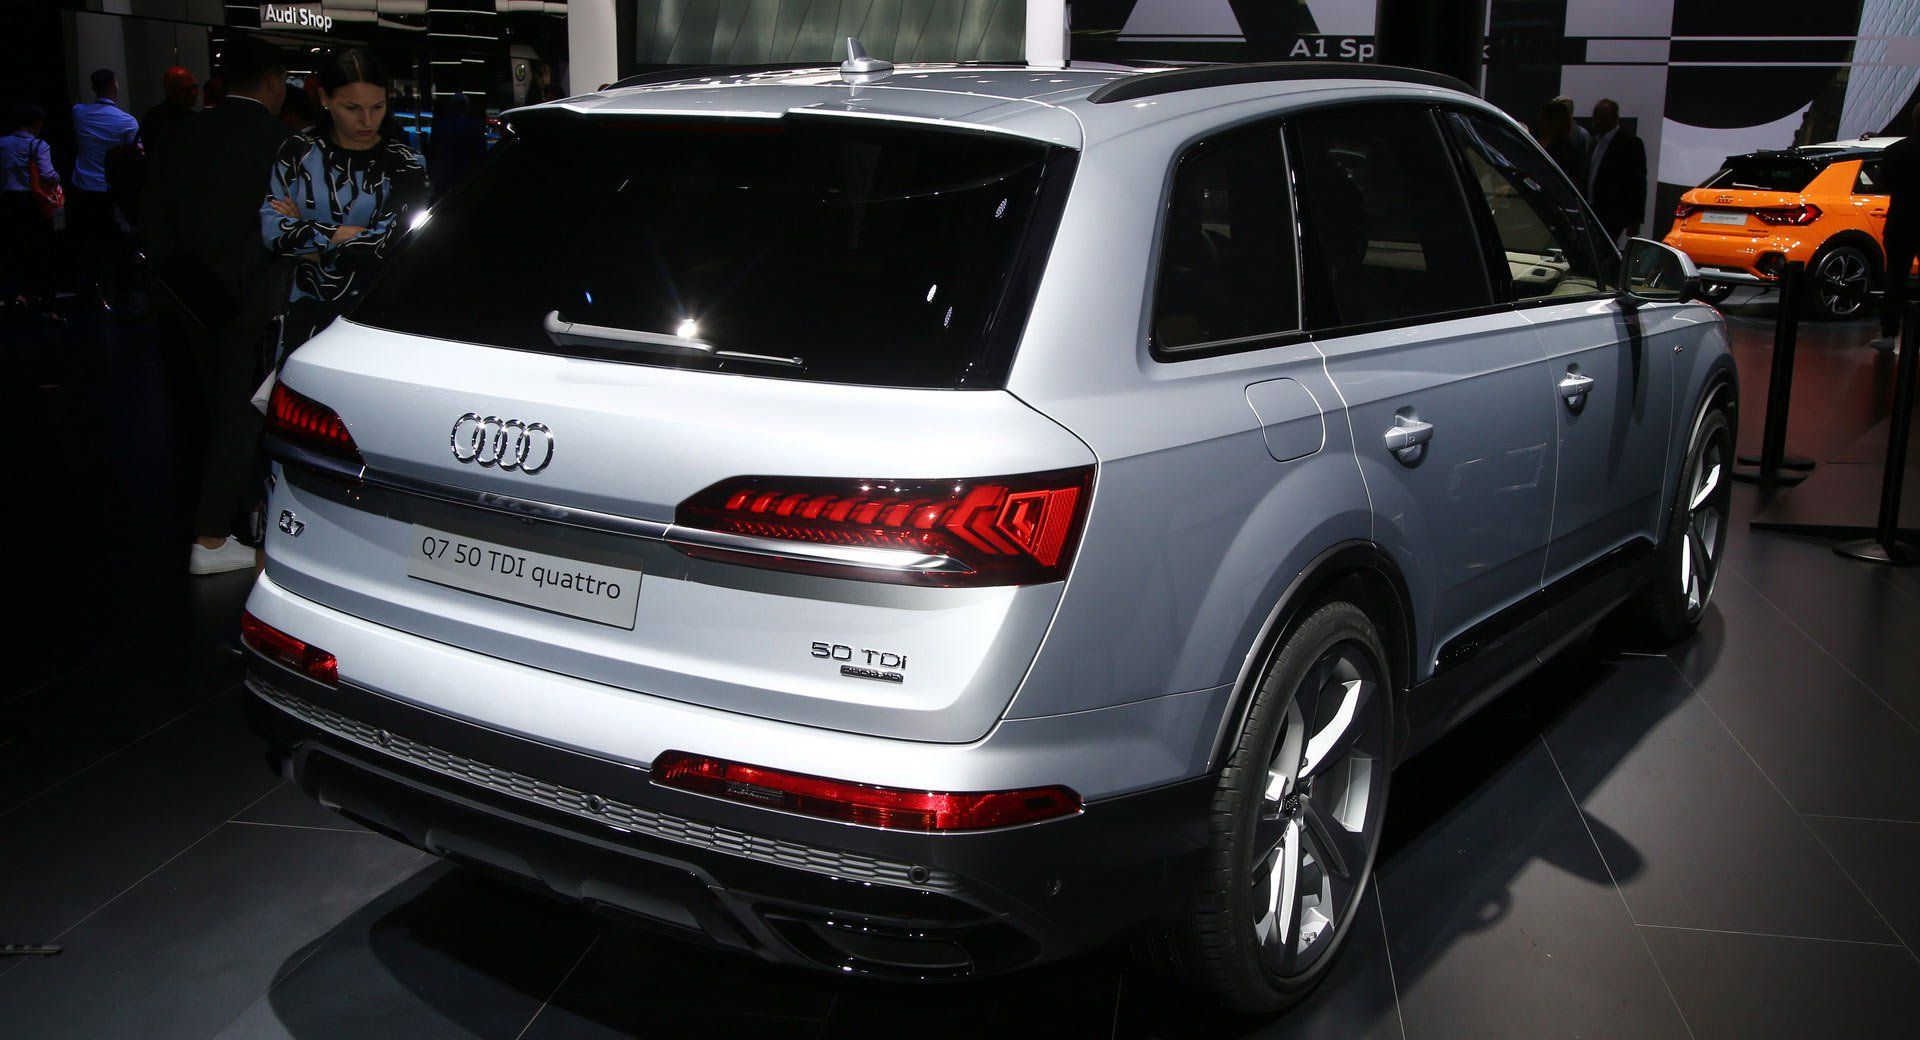 2020 Audi Q7 Stays Home For Public Debut Gears Up For Market Launch Live Images Audi Audiq7 Frankfurtmotorshow Galleries Newcars Audi Q7 Audi New Cars